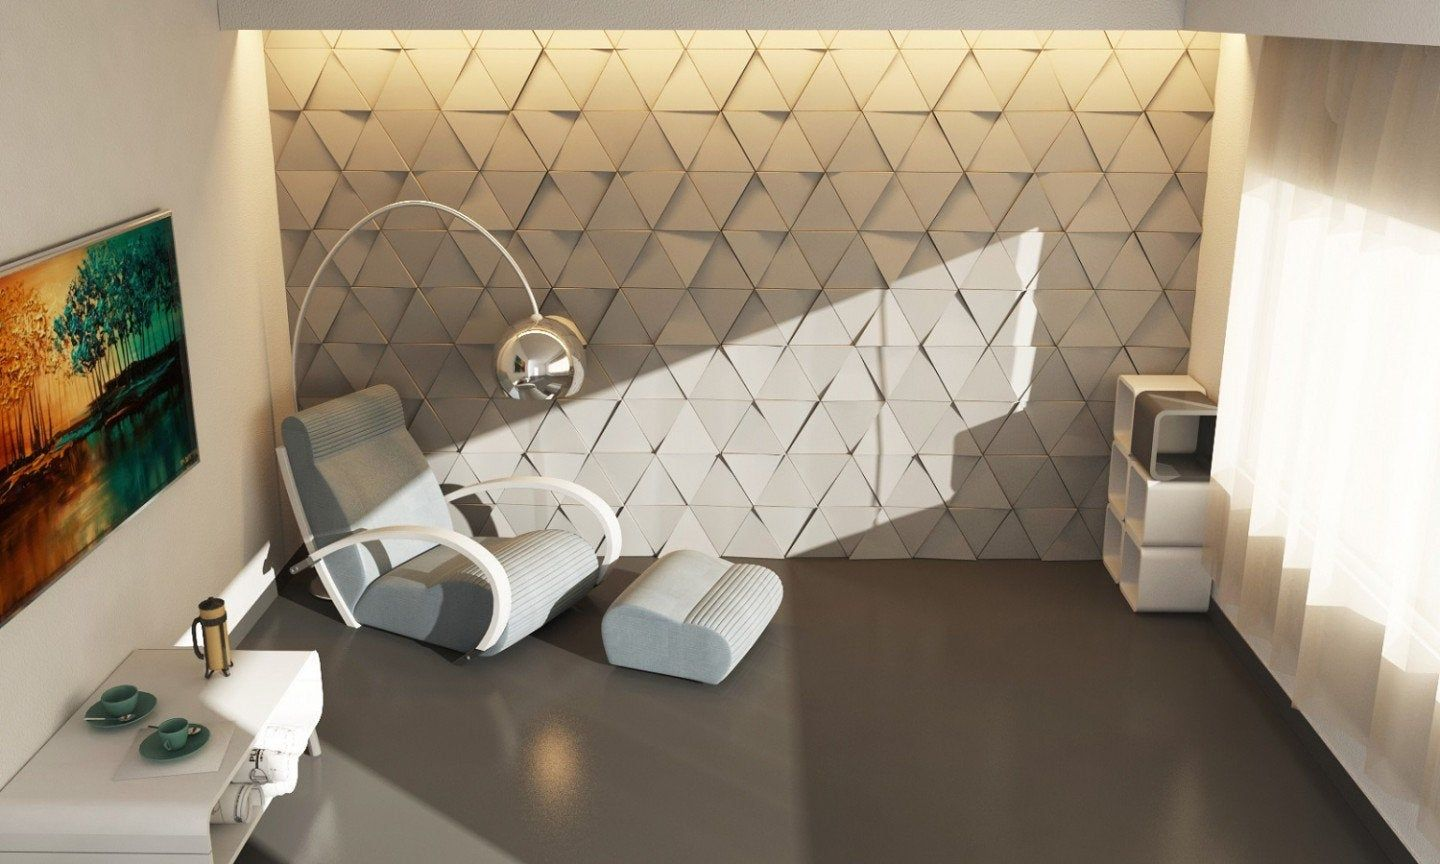 Euclid 3d Concrete Wall Tiles In 5 Colors In 2020 Wall Cladding Concrete Wall Wall Tiles